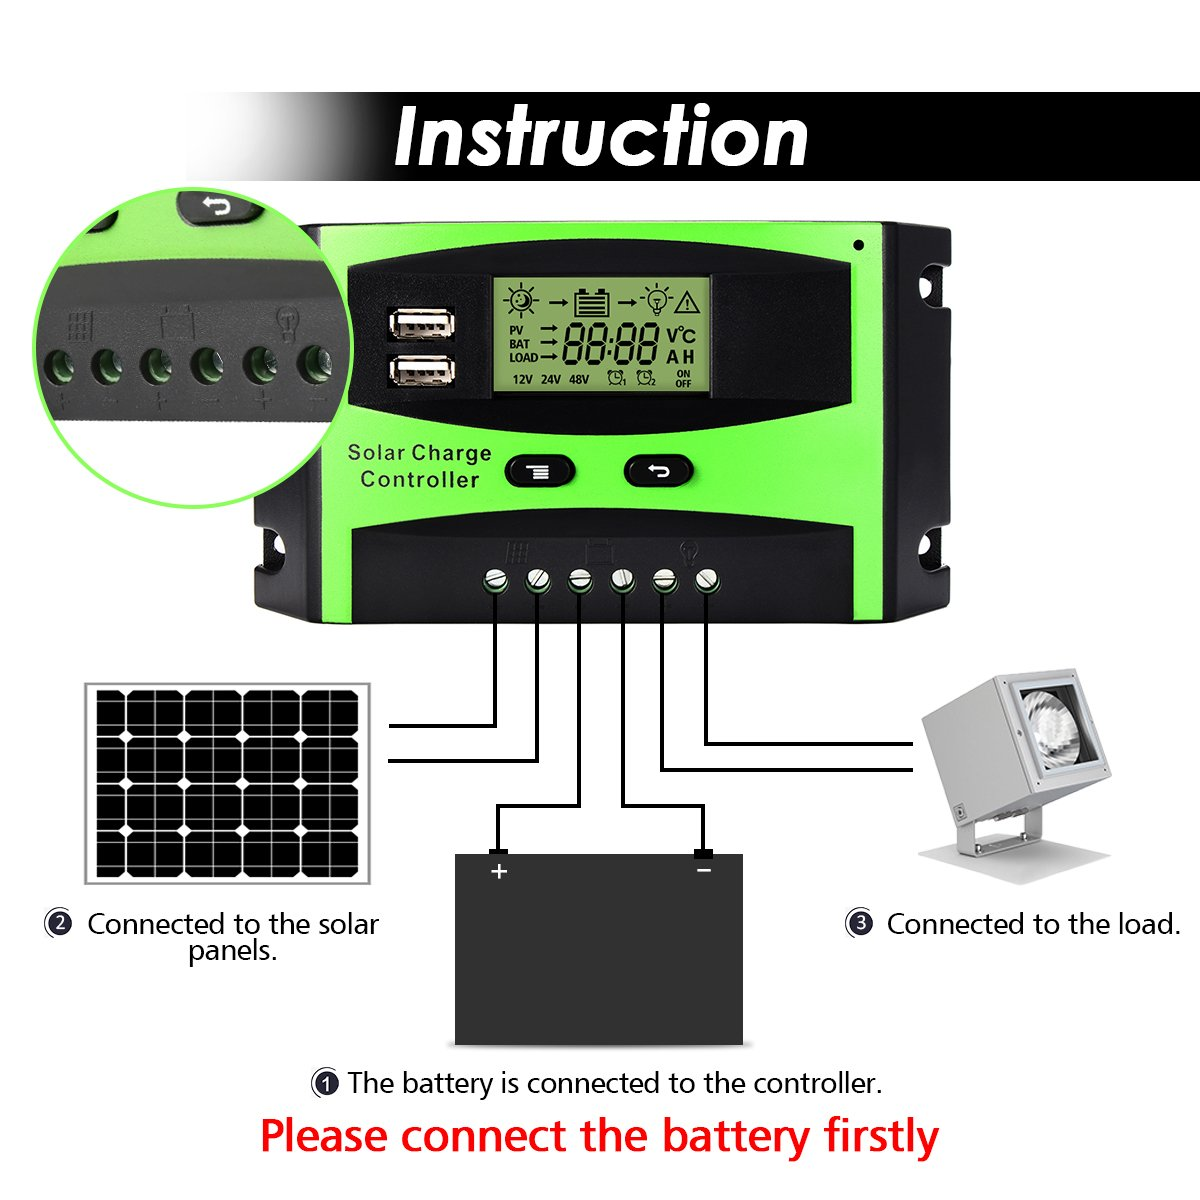 Mohoo Solar Charge Controller 30a 12v 24v Panel Regulator Pwm 10a 12v24v Automatic Art Of Circuits Lcd Display With Usb For Home Industry Commercial Boat